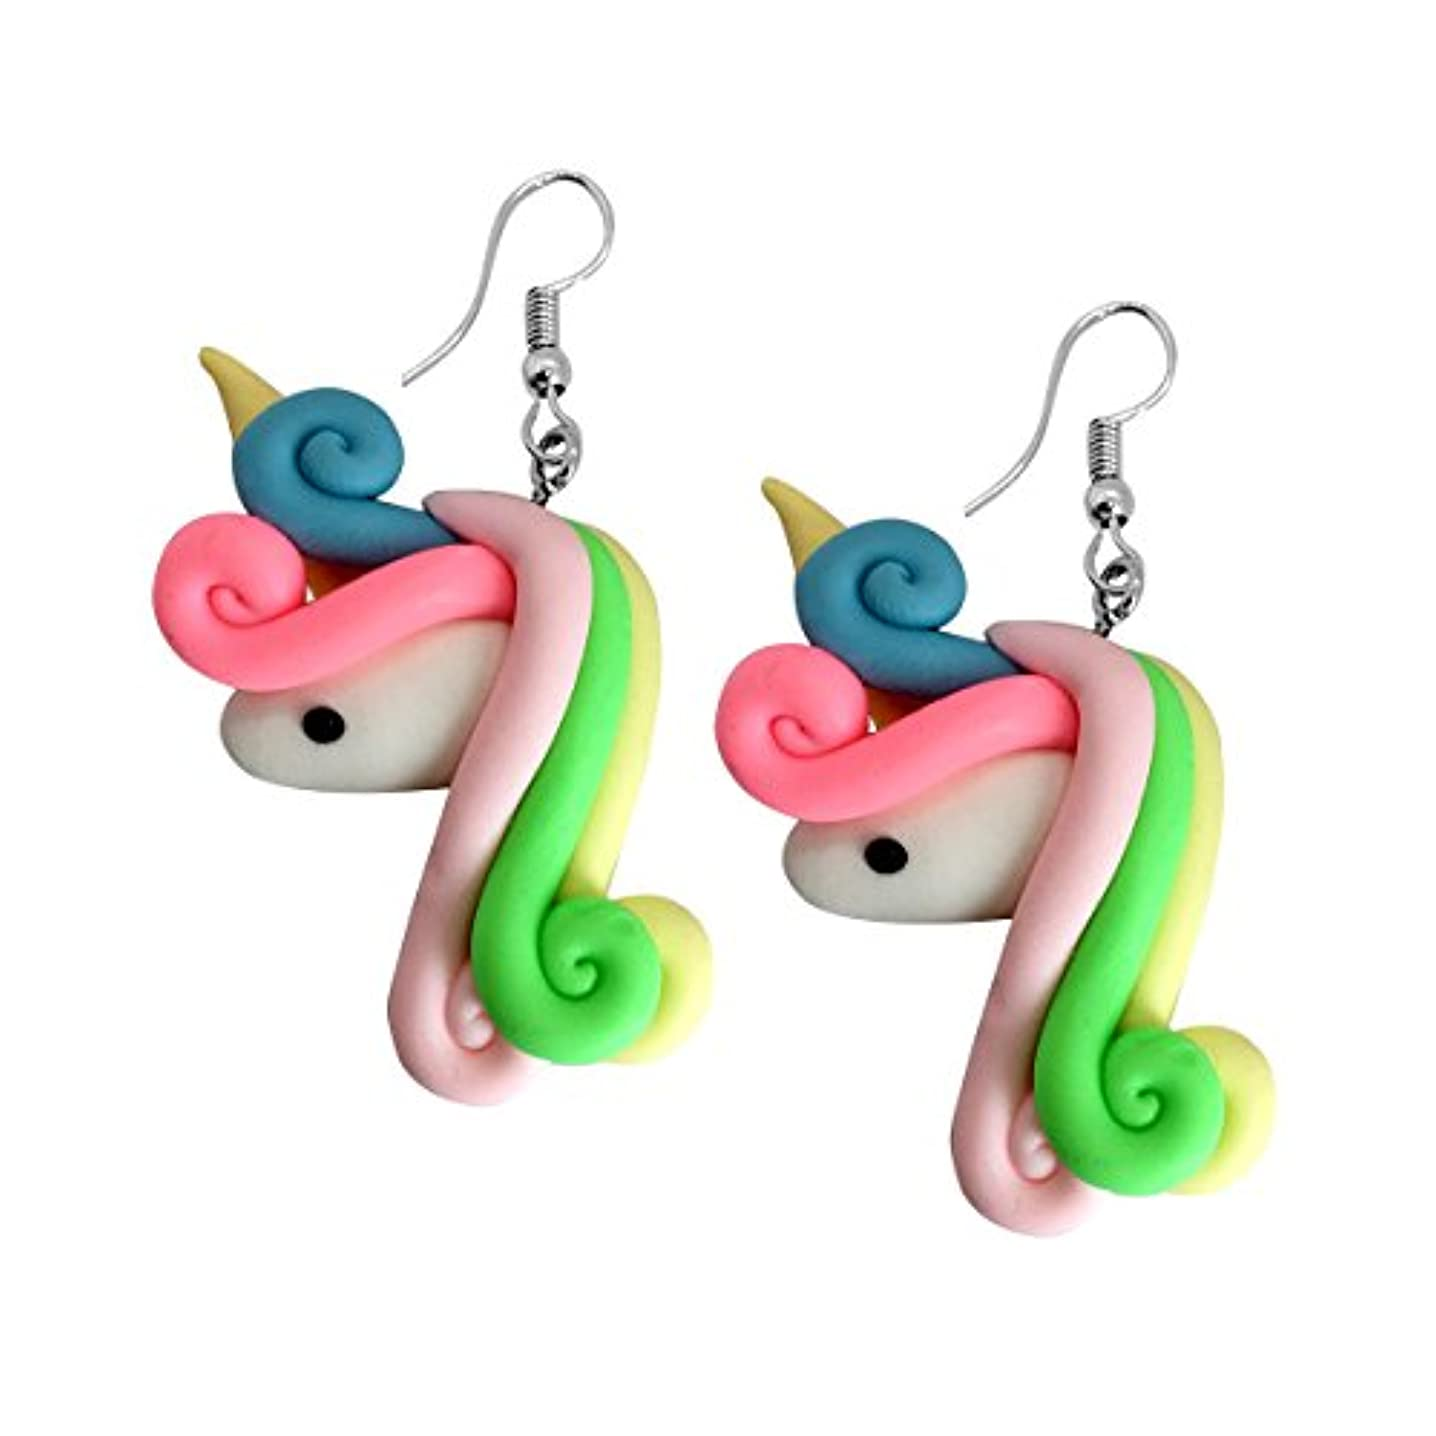 Adeley Cute Colorful Unicorn Handmade Polymer Clay Dangle Earrings for Girls Teens Women